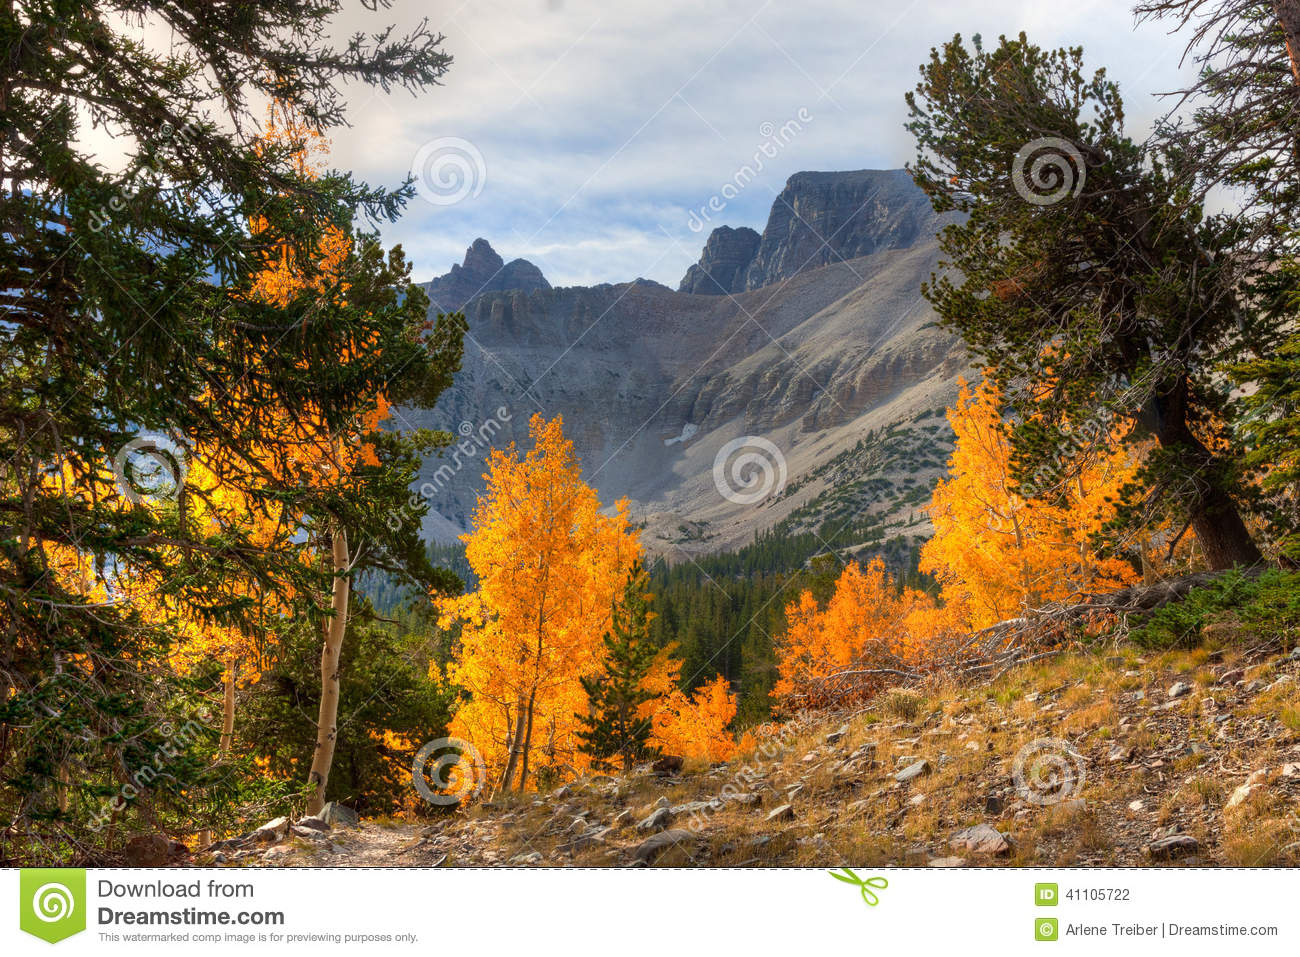 Nv Great Basin National Park Stock Photo Image Of Formations Boulders 41105722